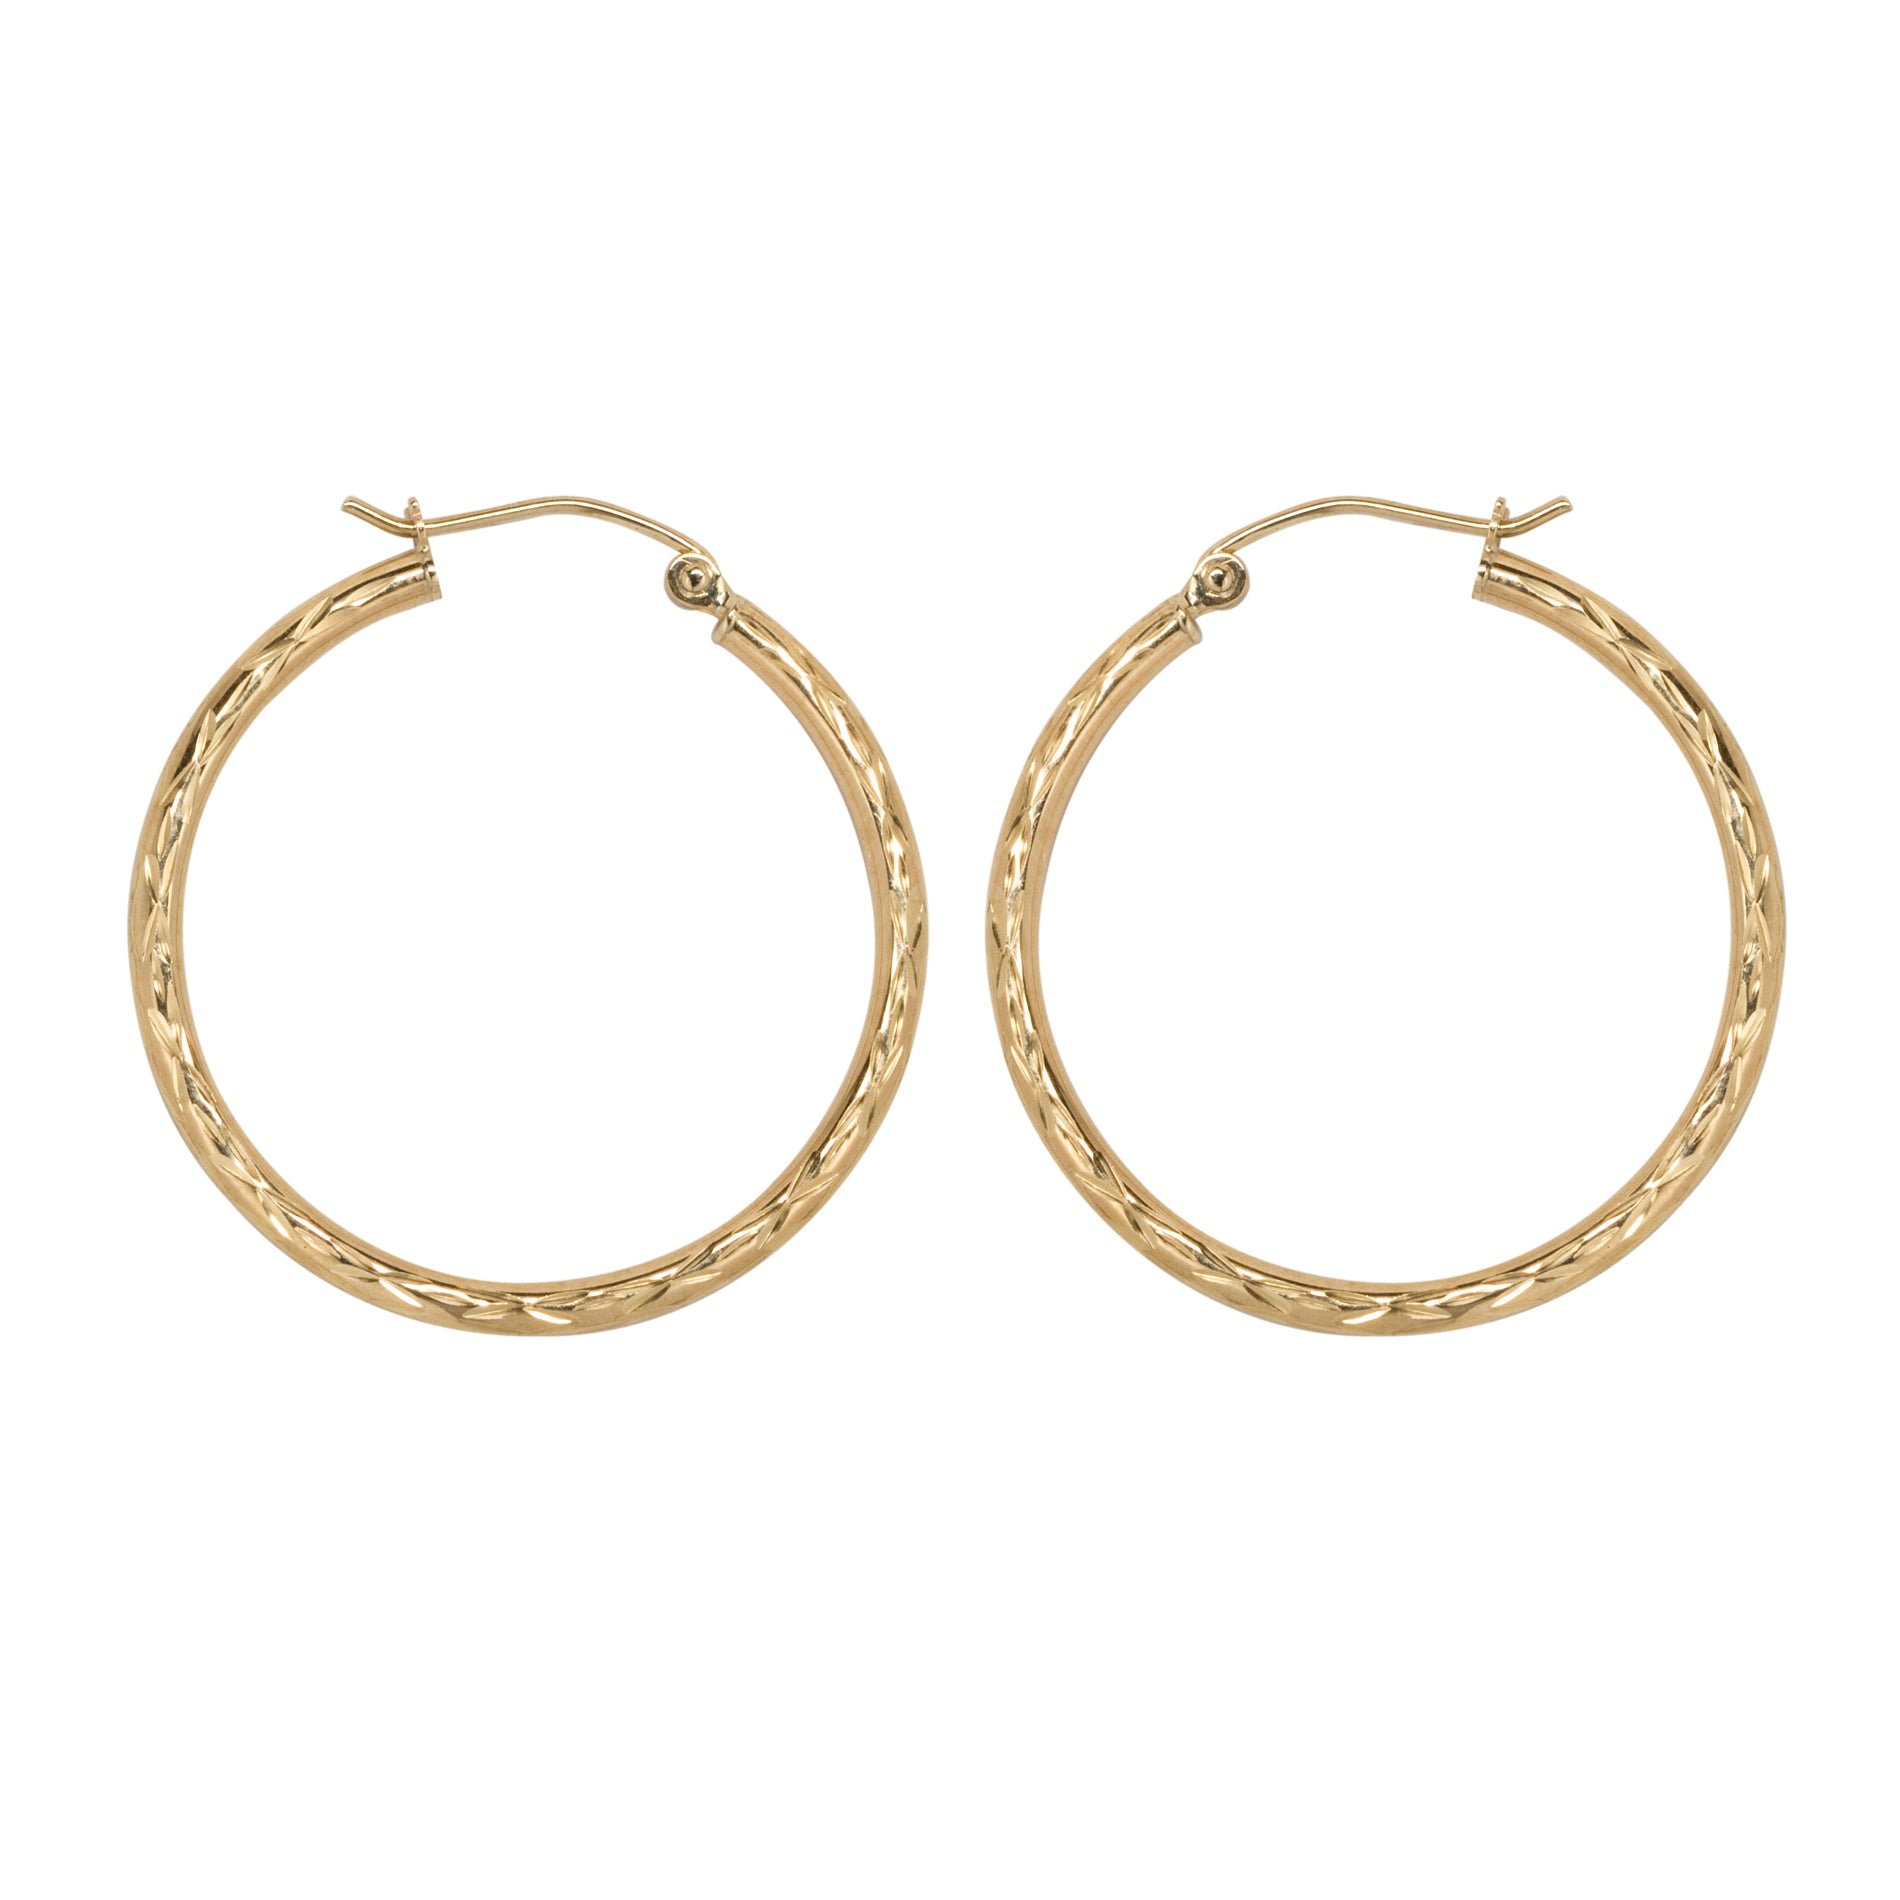 gold today mm mondevio shipping earrings overstock round watches jewelry hoop product free